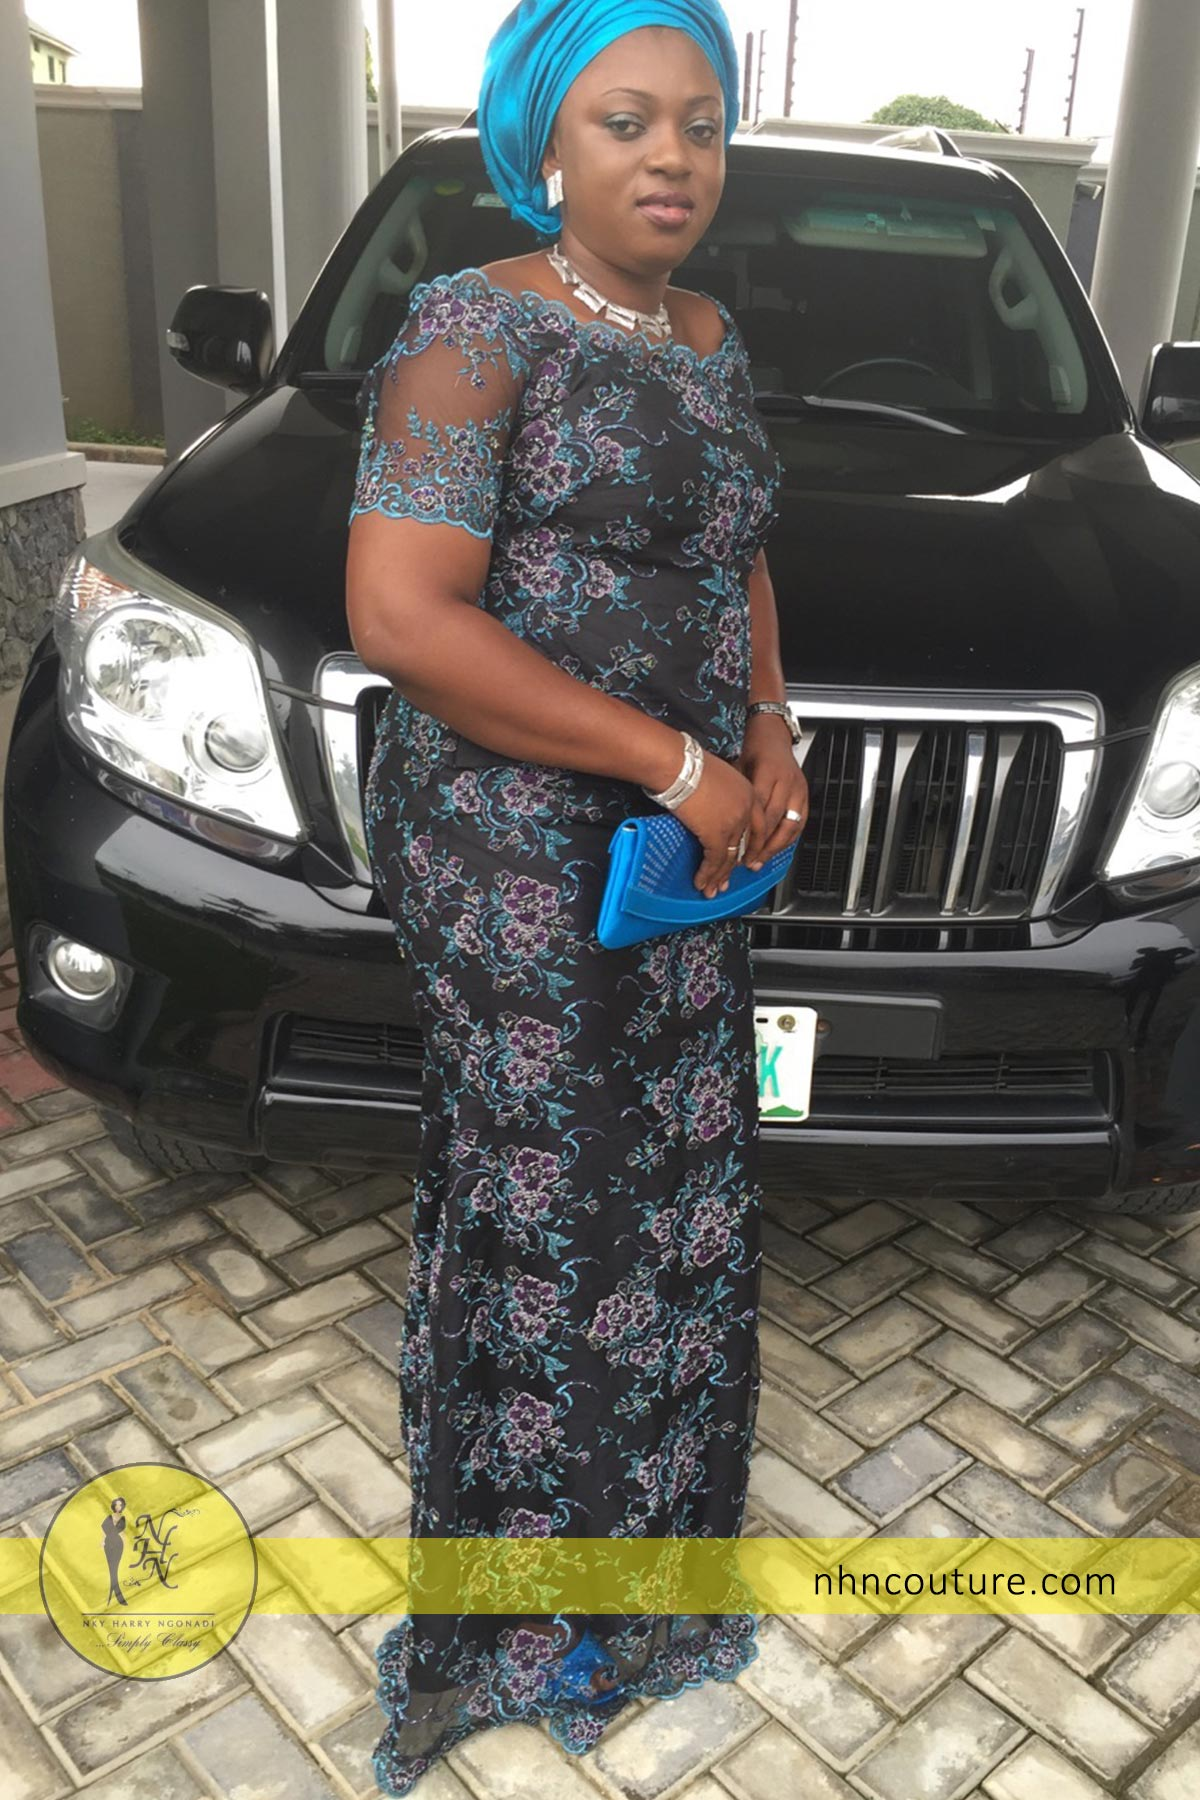 spotted-in-NHN-Couture_Blue-Lace_top-and-skirt_Asoebi_Nigerian-Traditional-Attire